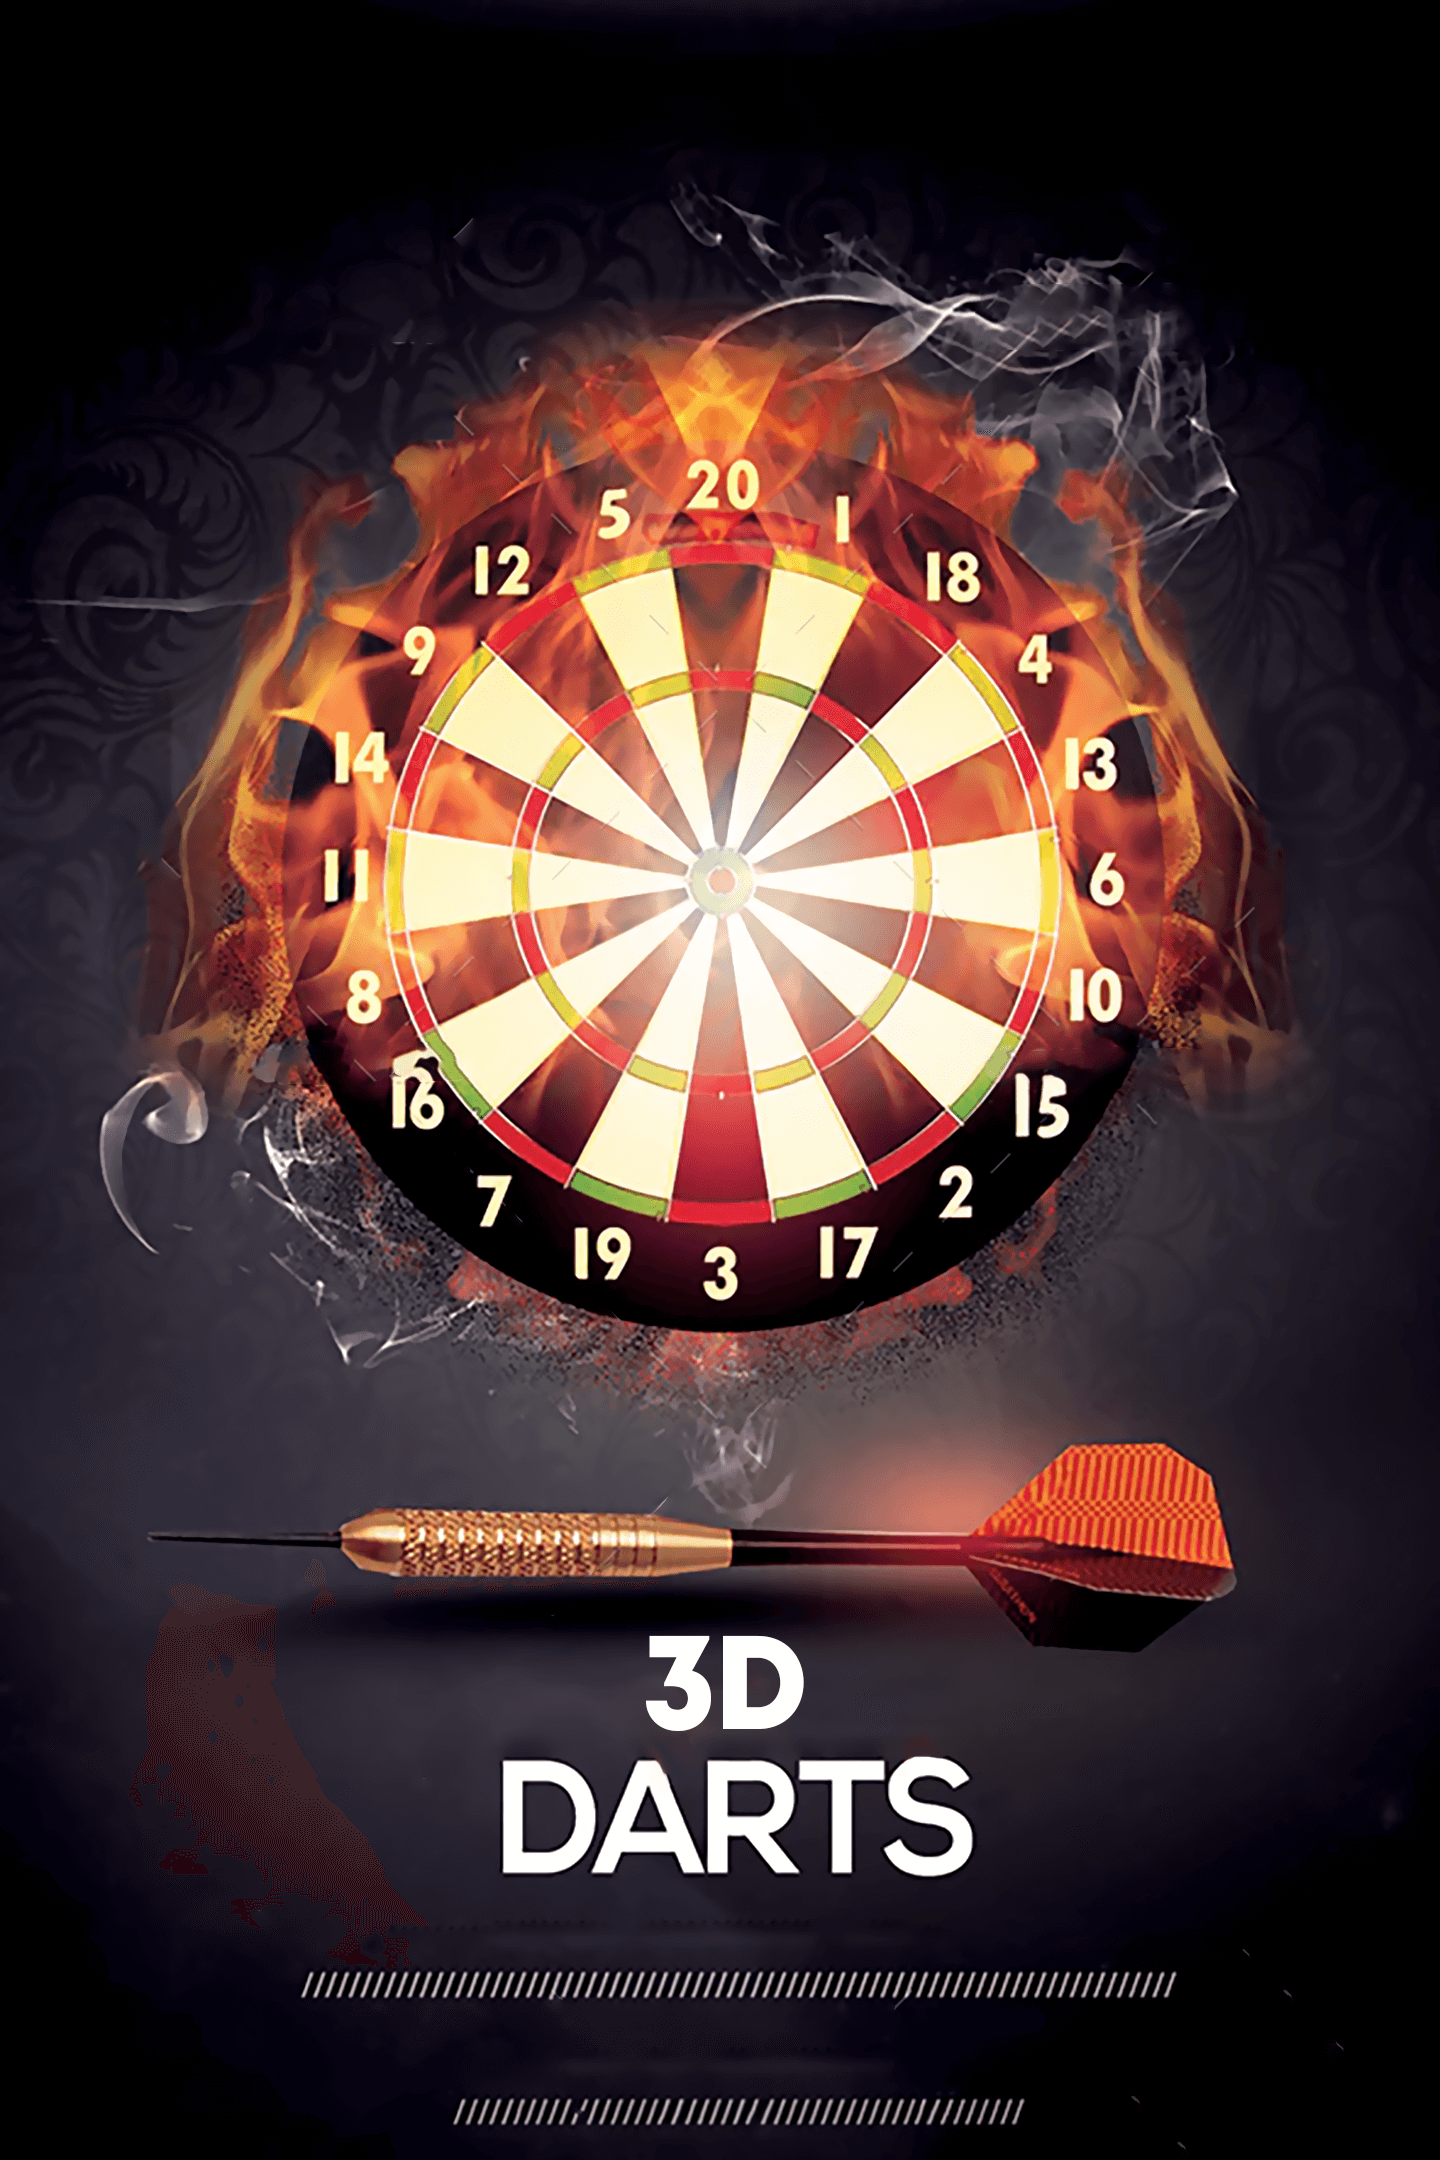 3D Darts: Crazy Darts Player